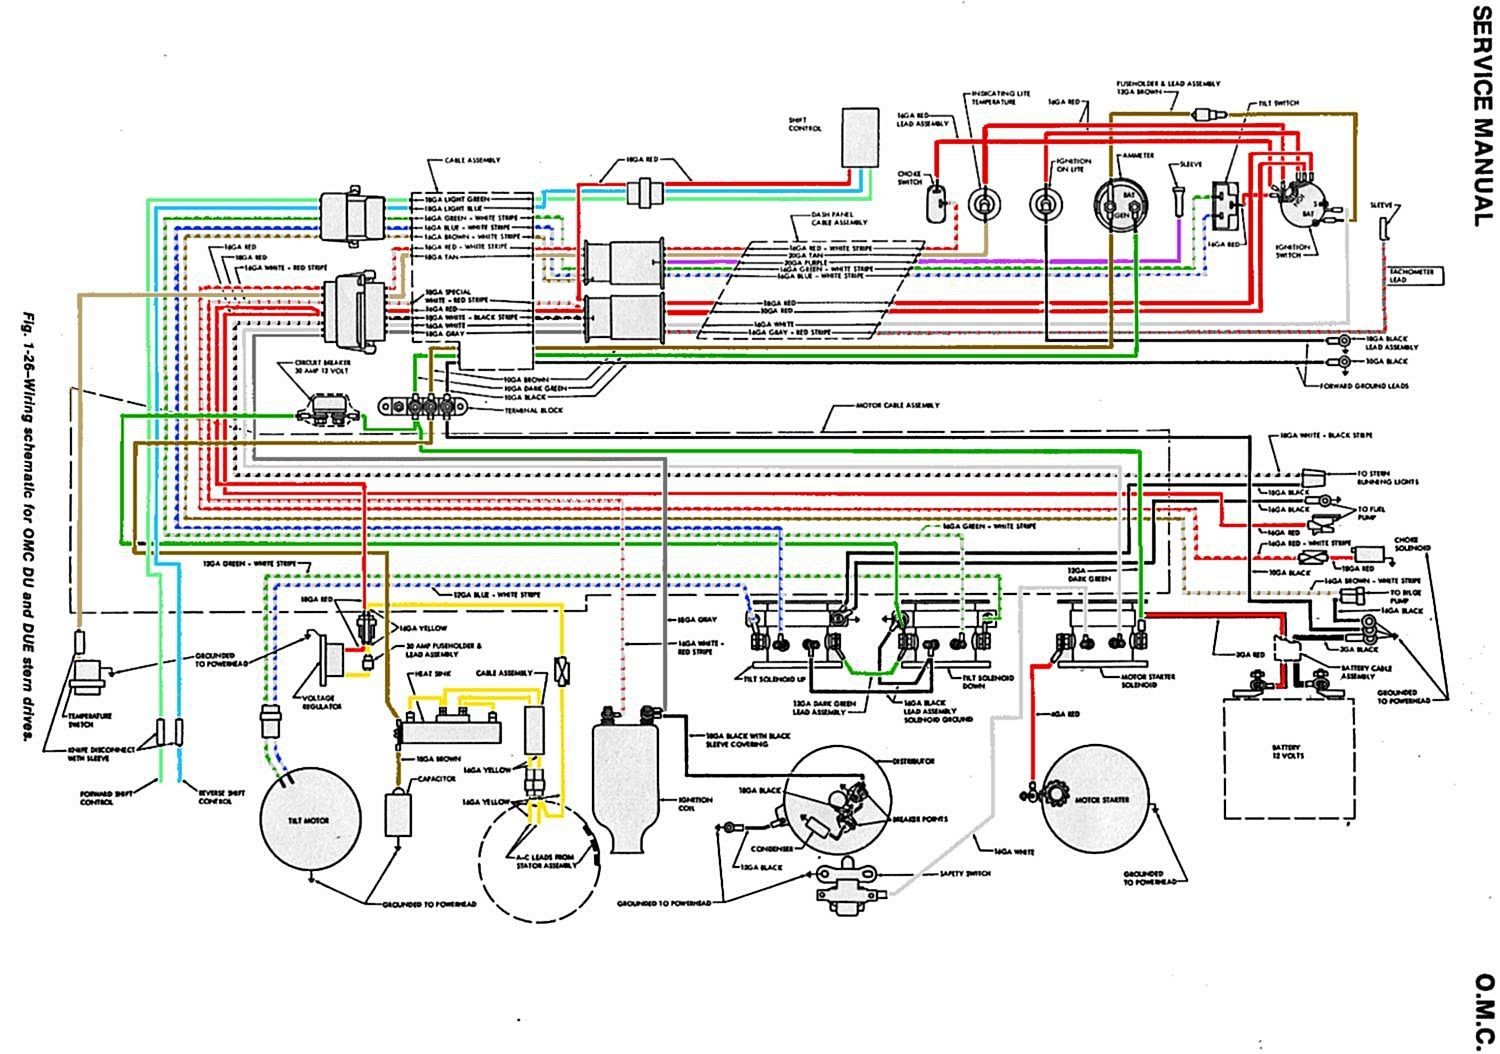 omc wiring diagram on stratos bass boat wiring diagram library 2005 tracker boat wiring schematic stratos wiring diagrams wiring librarytriton boat wiring diagram 26 wiring diagram images wiring lowe wiring diagram